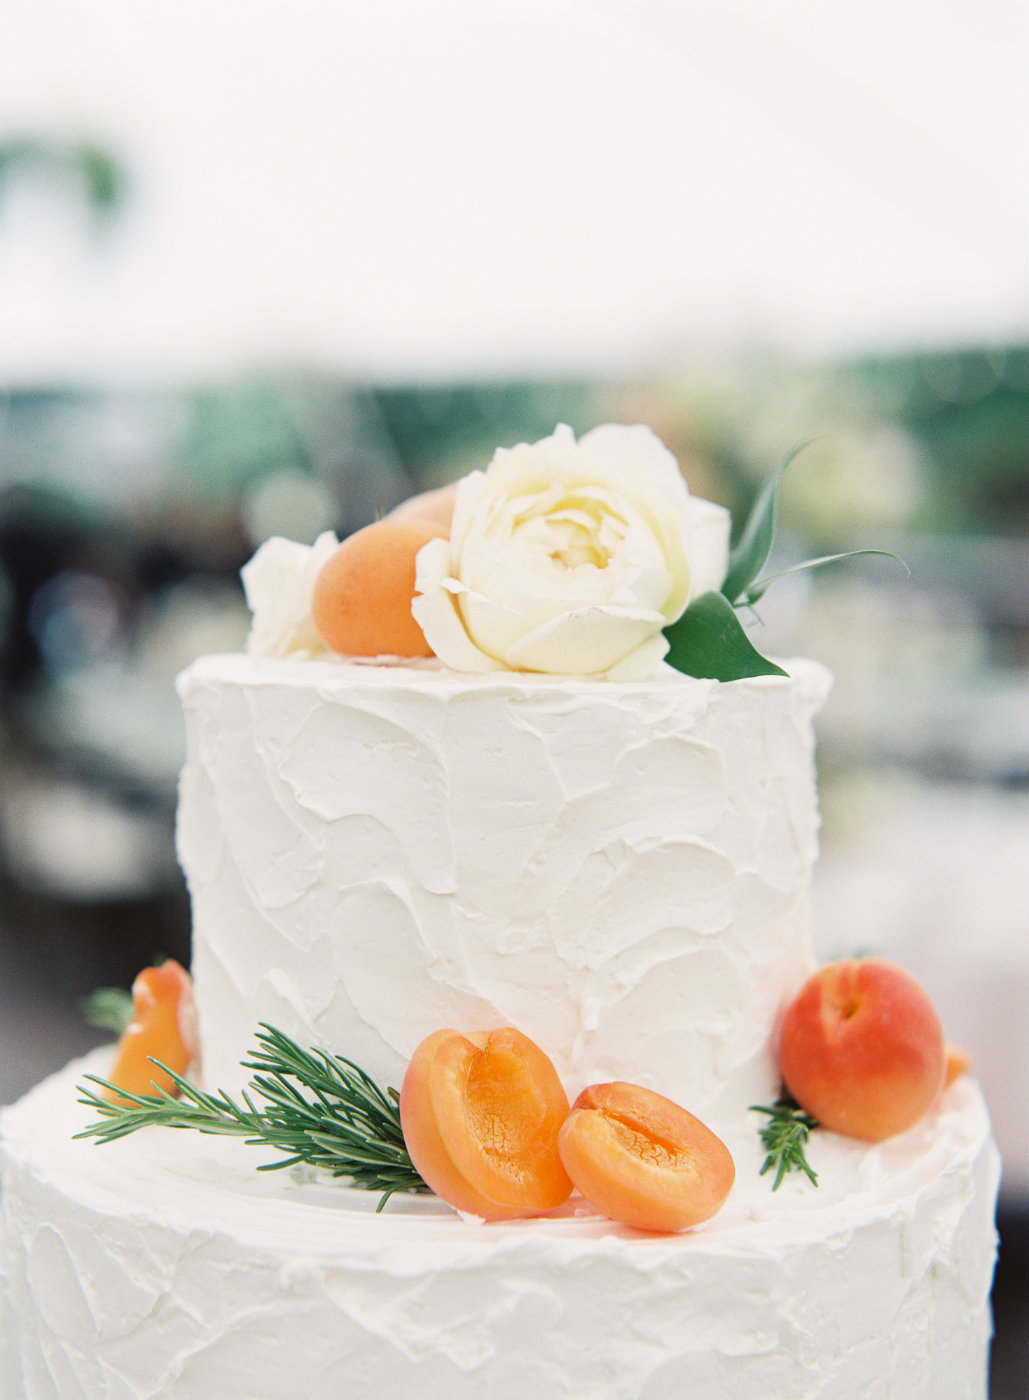 Beautiful cake decorated with apricots and rosemary sprigs  are beautiful touches at this luxury Italian wedding.